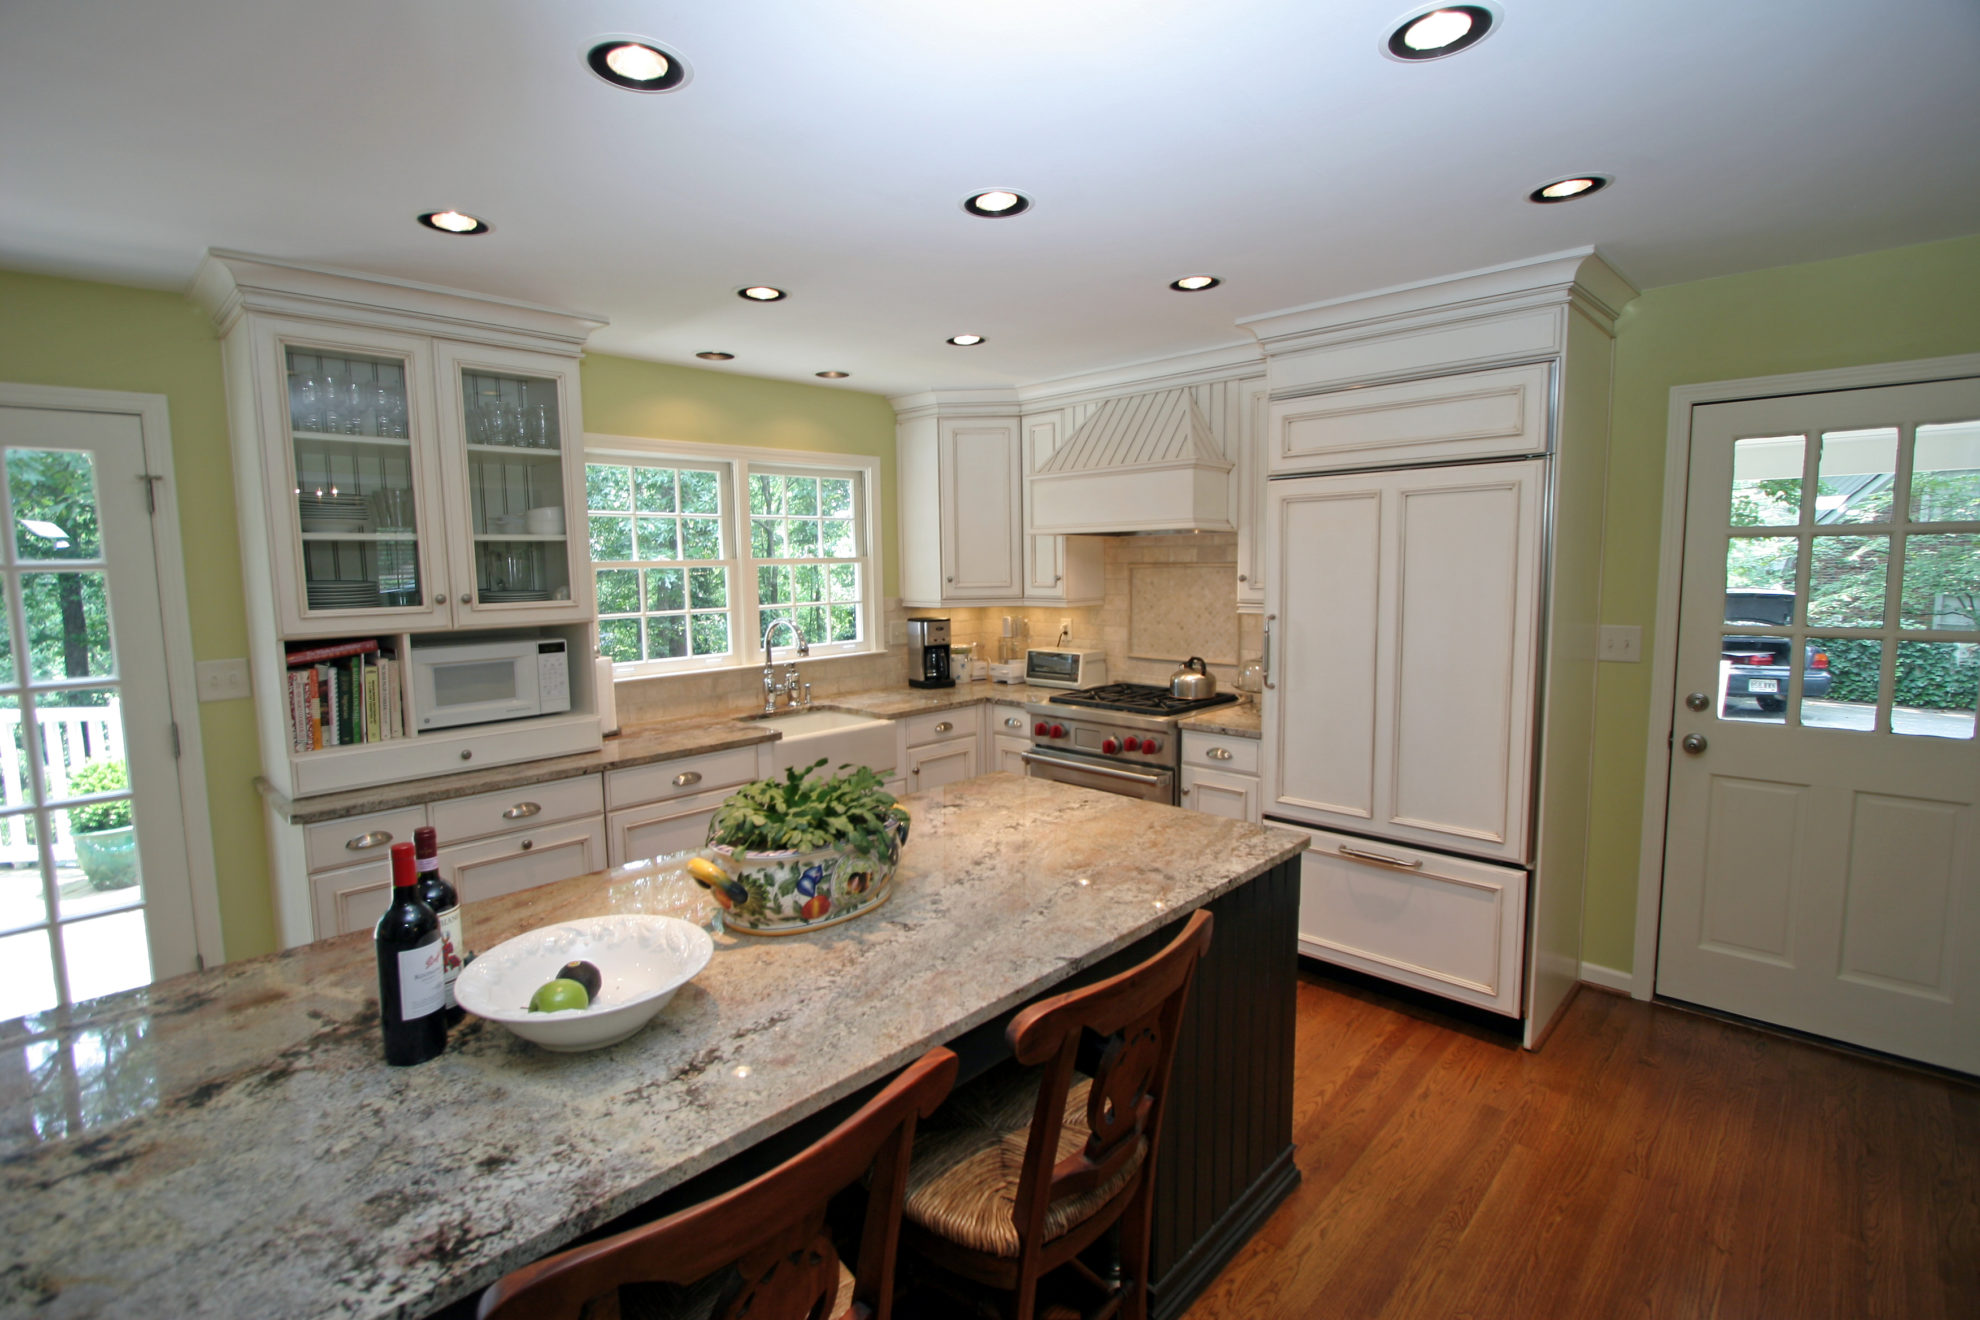 http://creativecabinetryinc.com/wp-content/uploads/2019/06/u-kitchen-white-stained-and-glazed-wit-chrome-hardware-e1561638467695.jpg